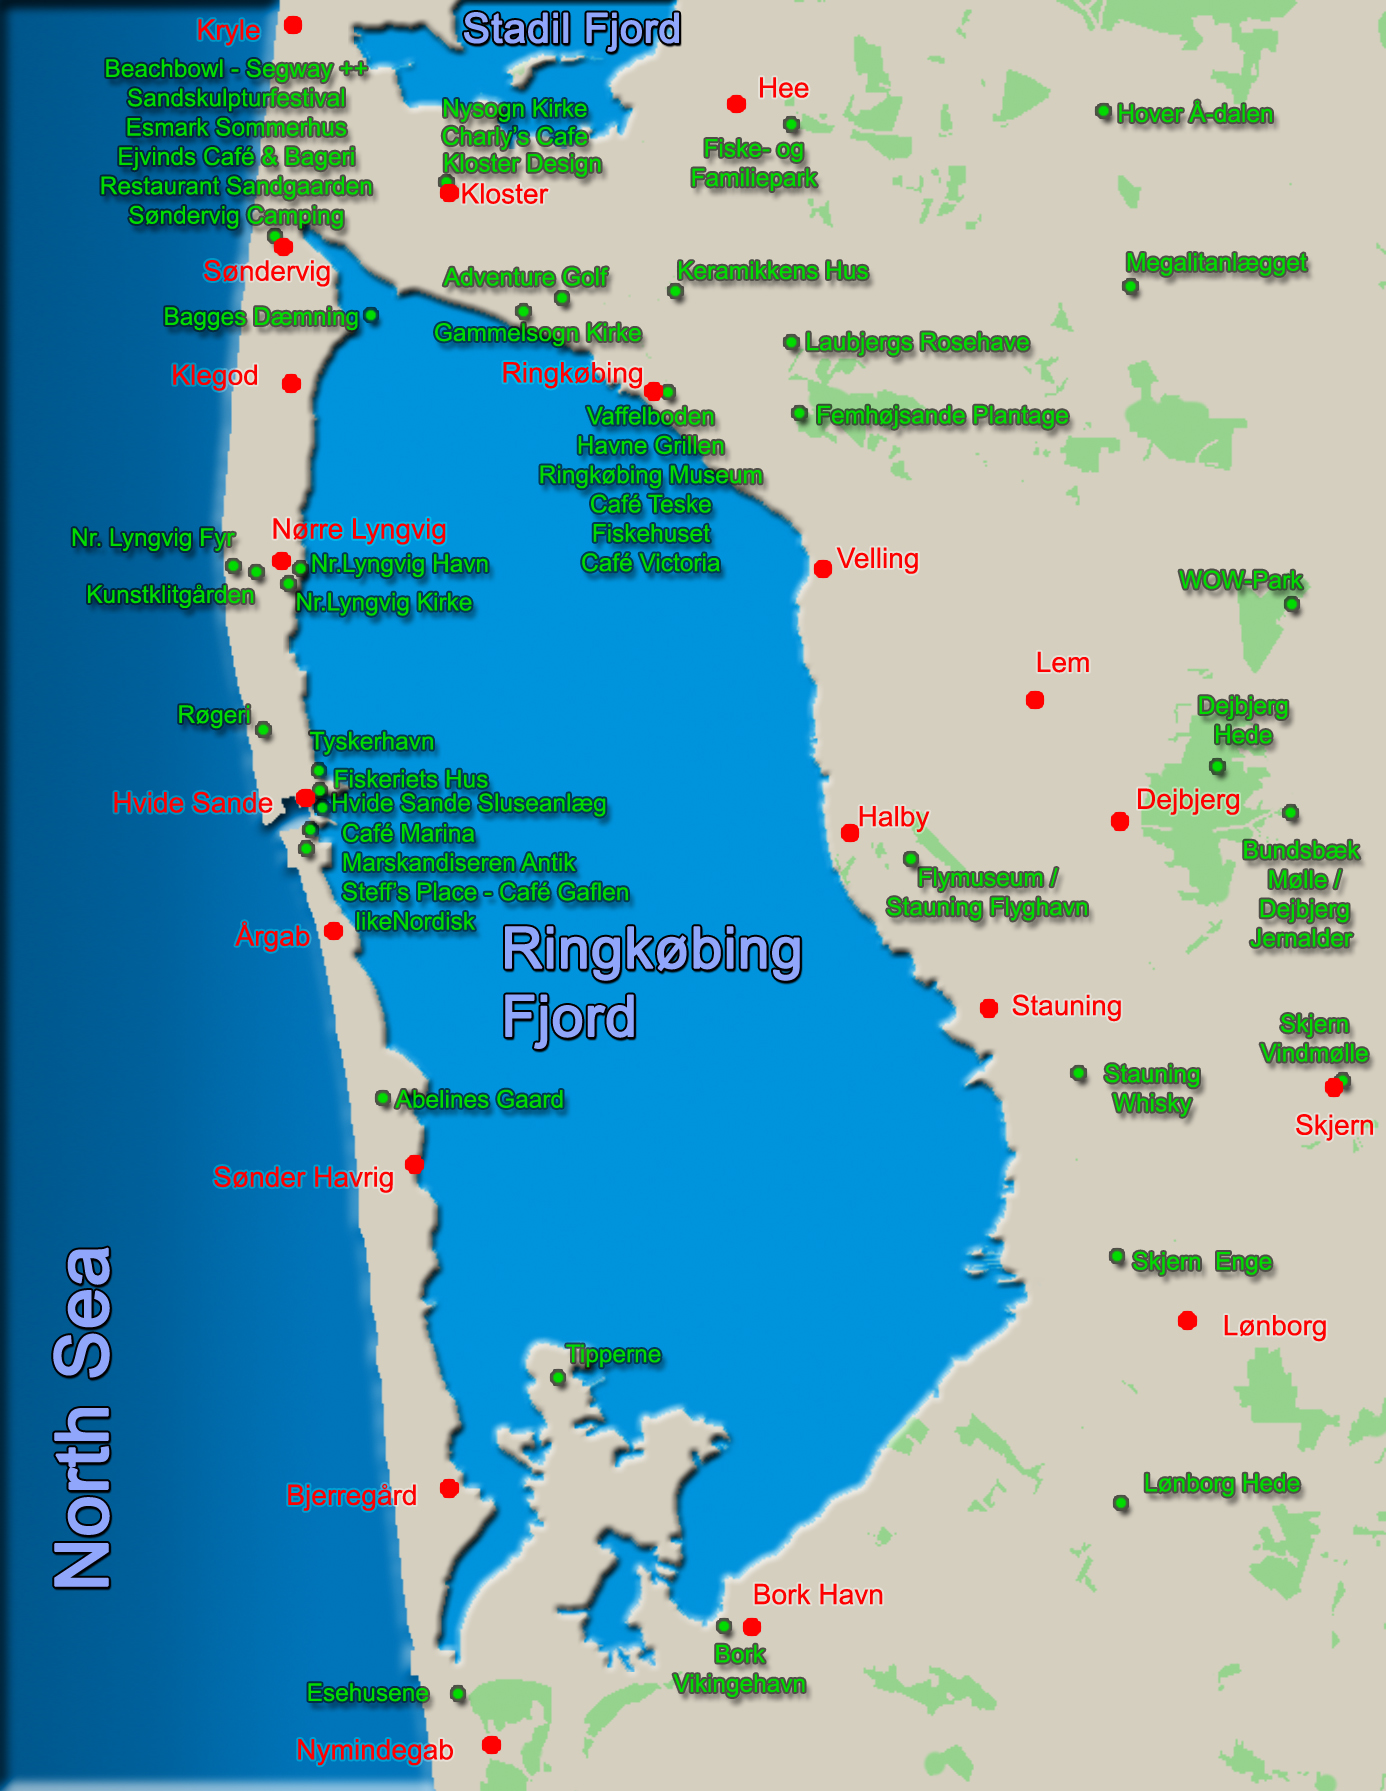 Ringkøbing Fjord Map - Guide / Attractions / Points of Interest